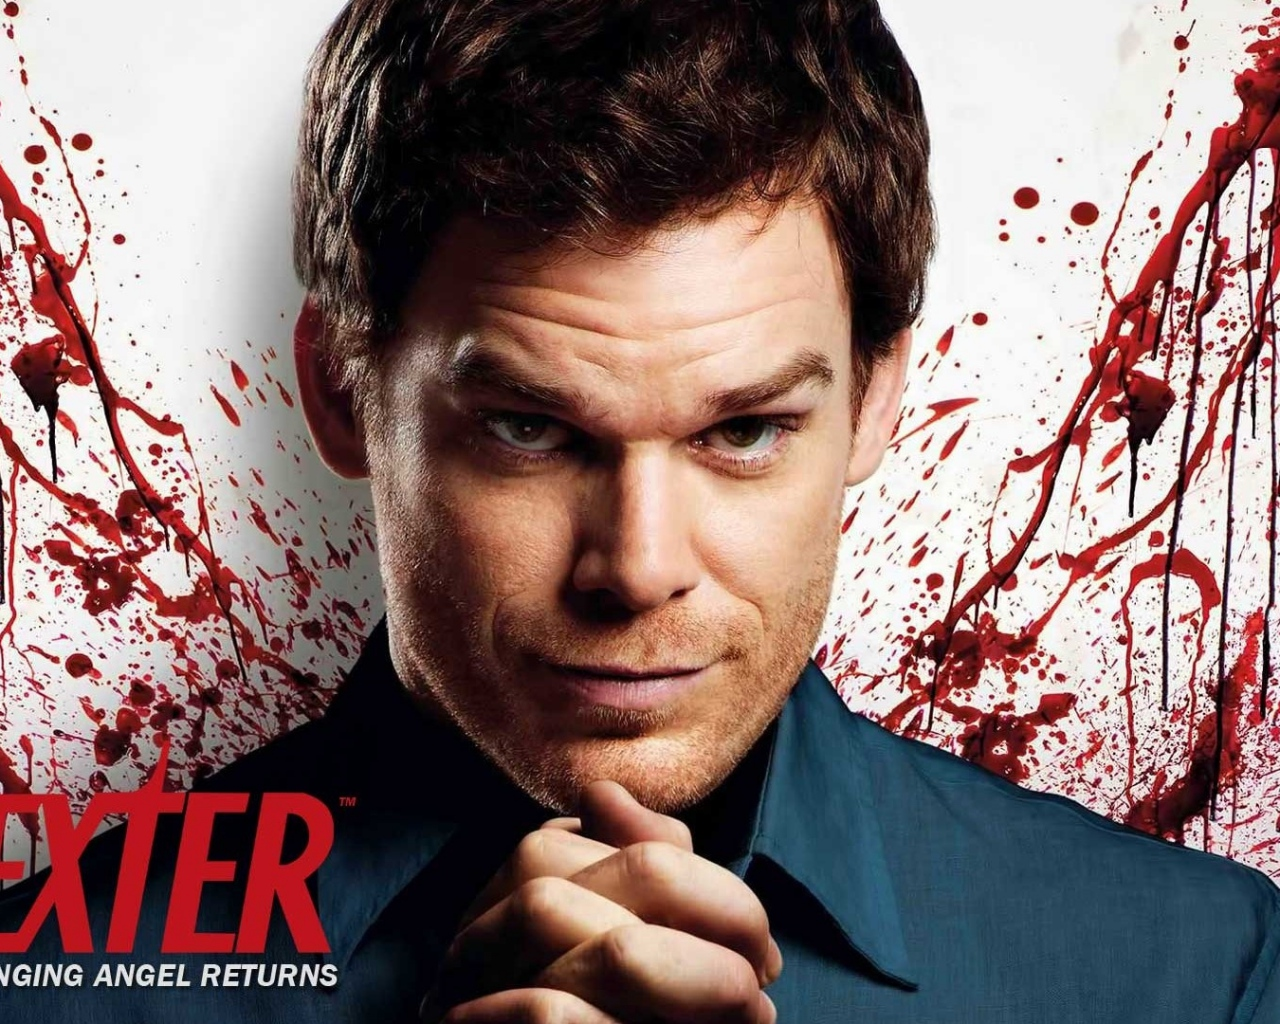 Preview wallpaper dexter, dexter morgan, angel, wings, blood, style, image